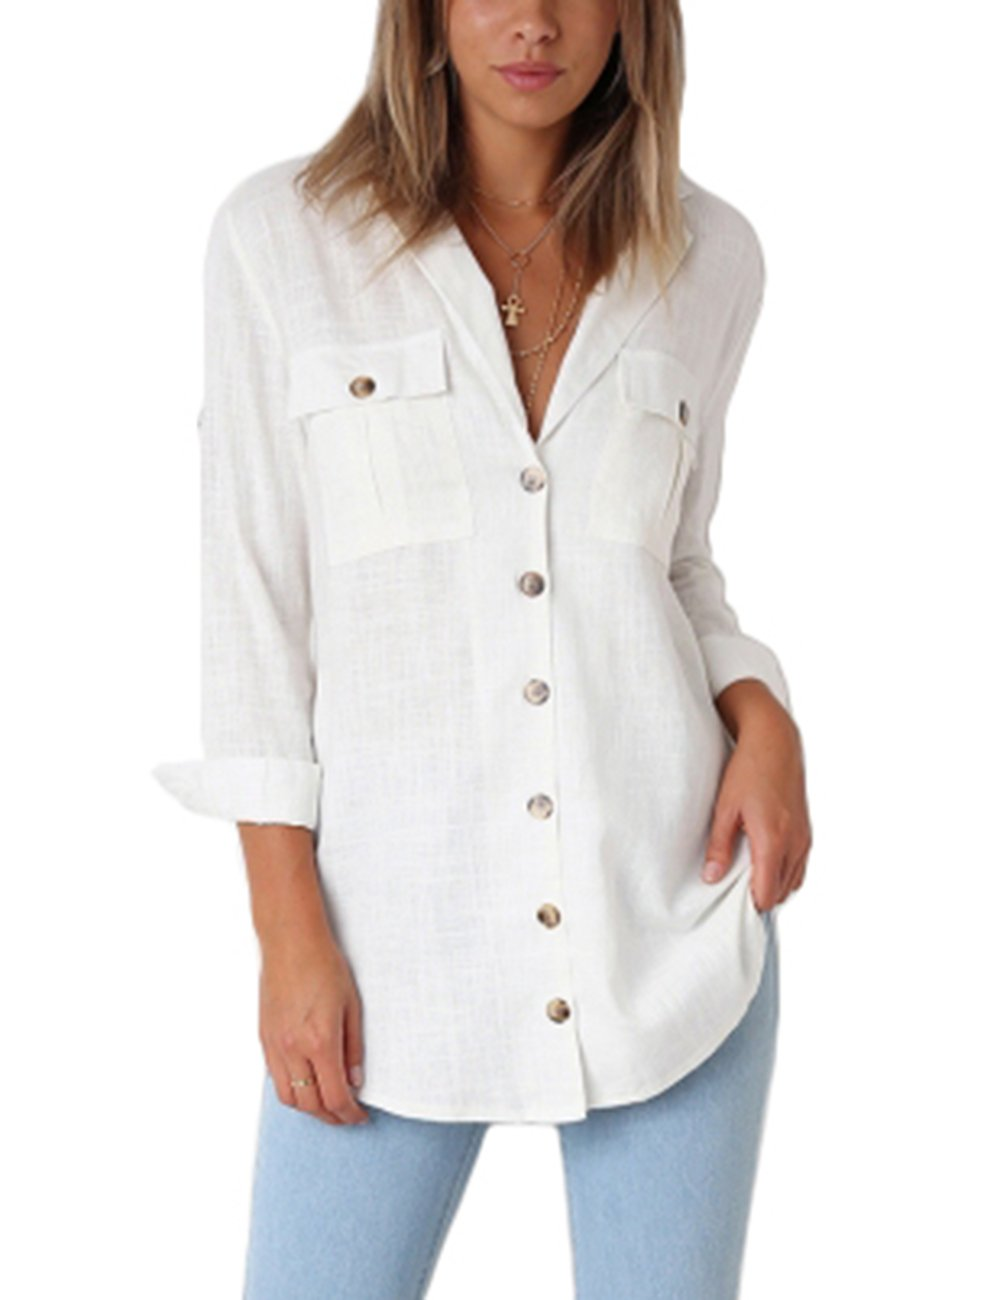 GRAPENT Women's Casual Loose Roll-up Sleeve Blouse Pocket Button Down Shirts Tops M(US 8-10)